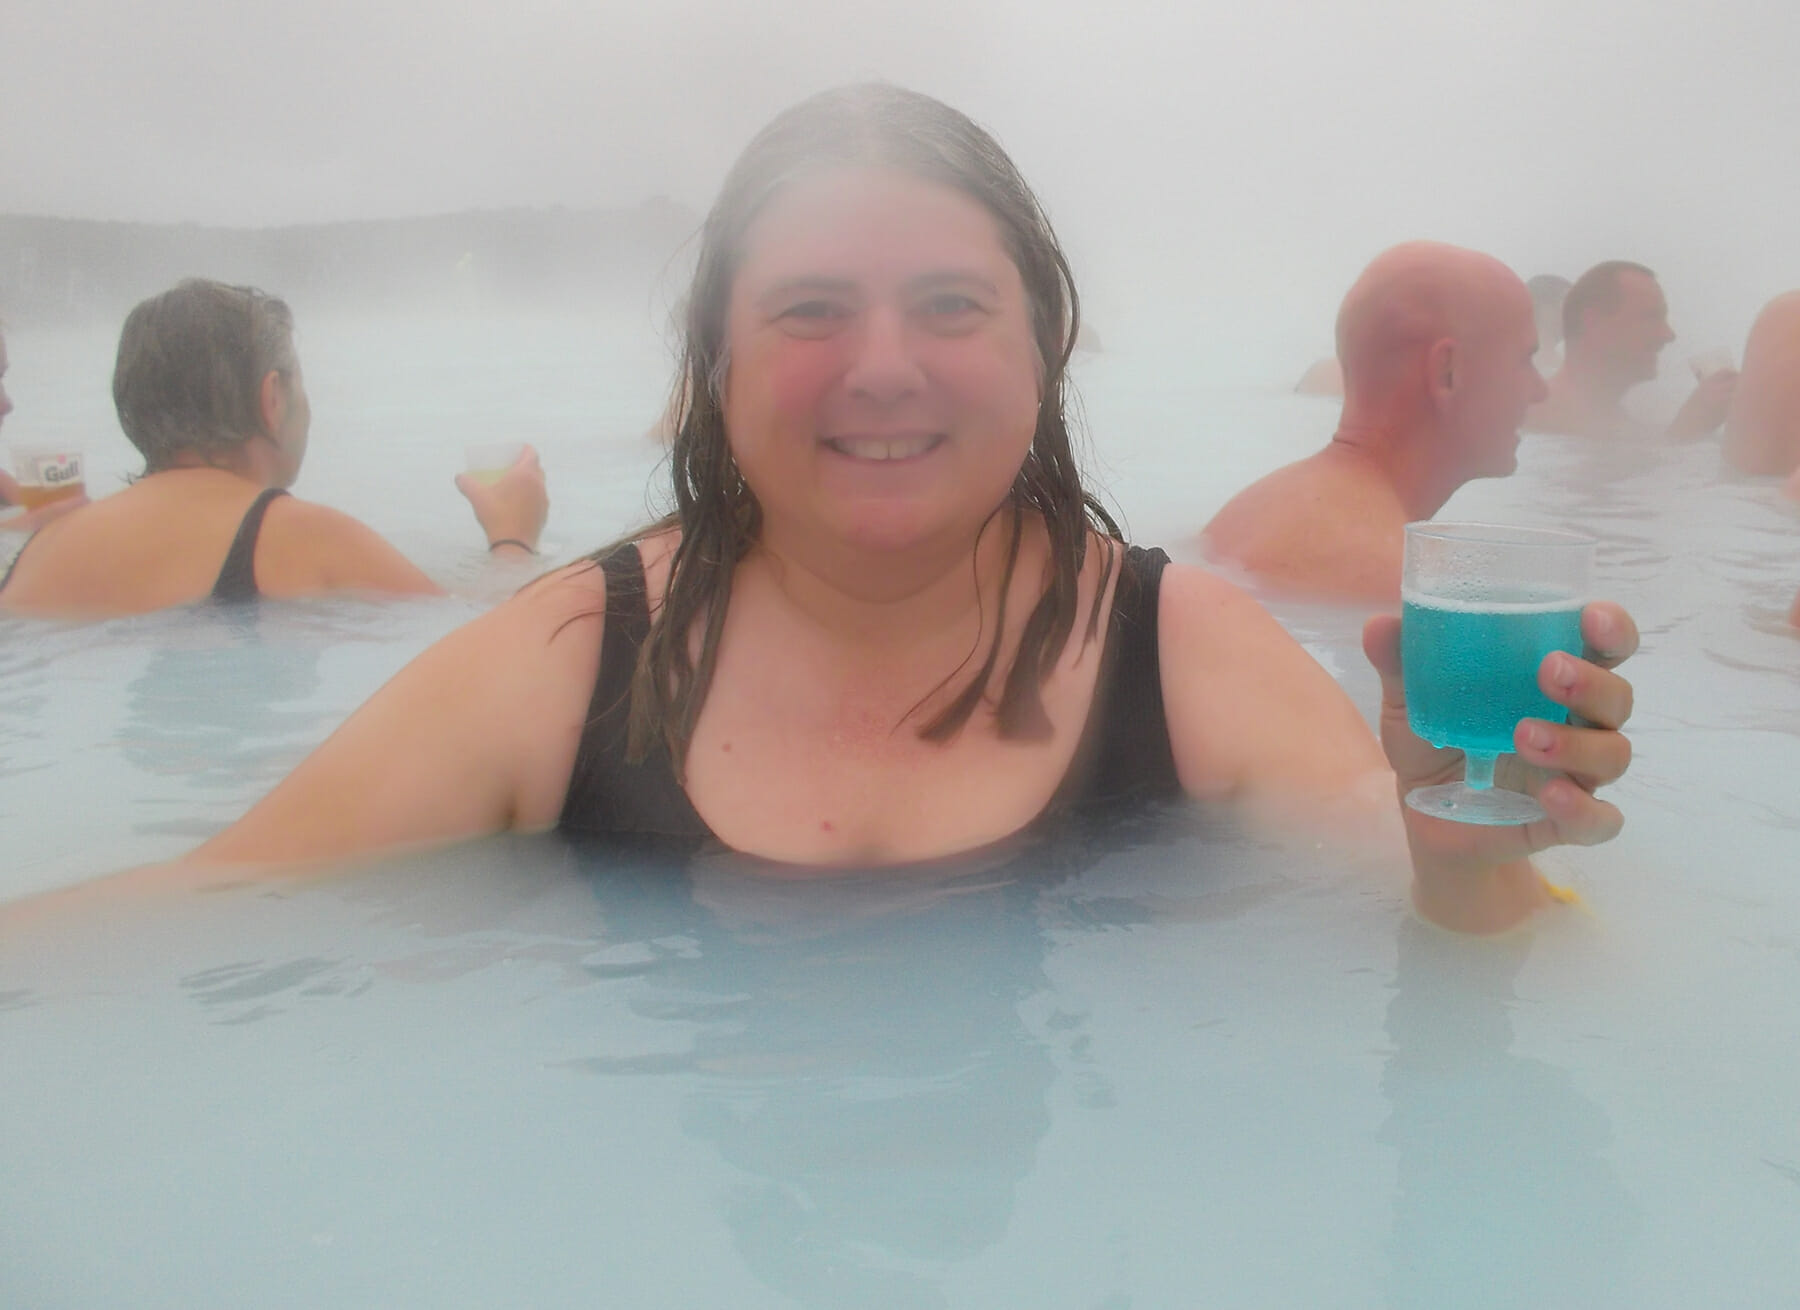 Soaking in Iceland's Blue Lagoon